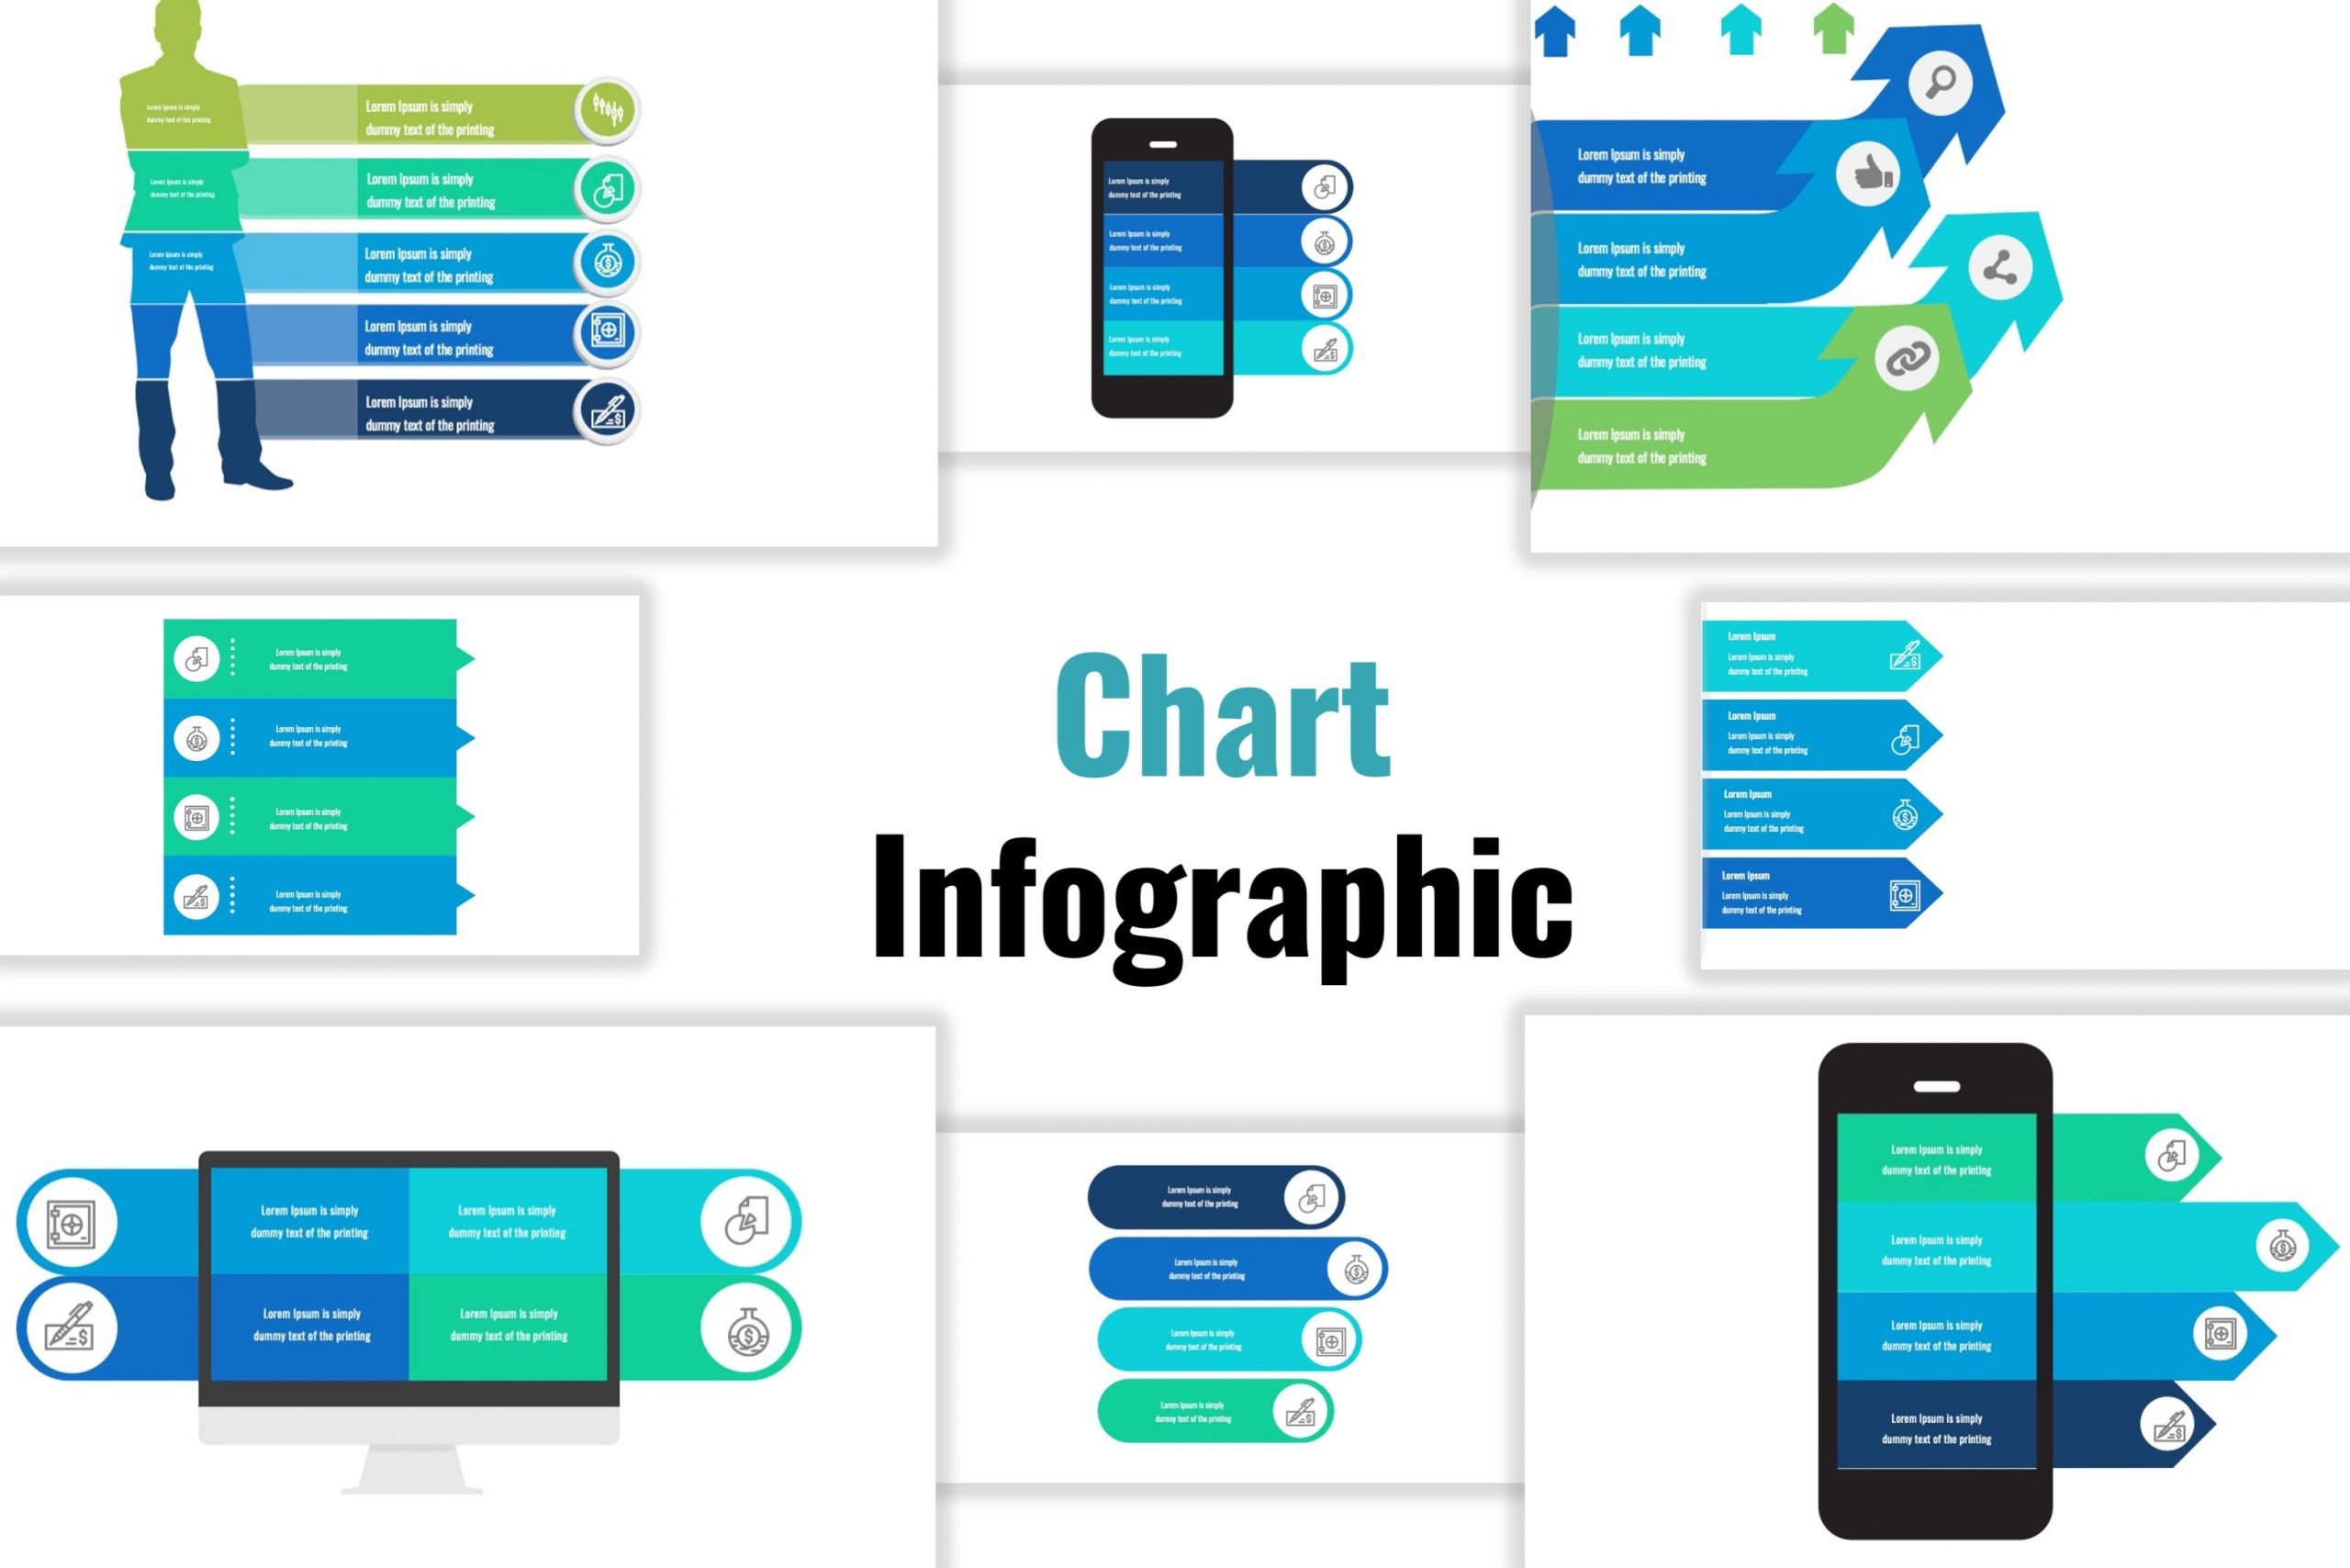 Free infographic template of chart